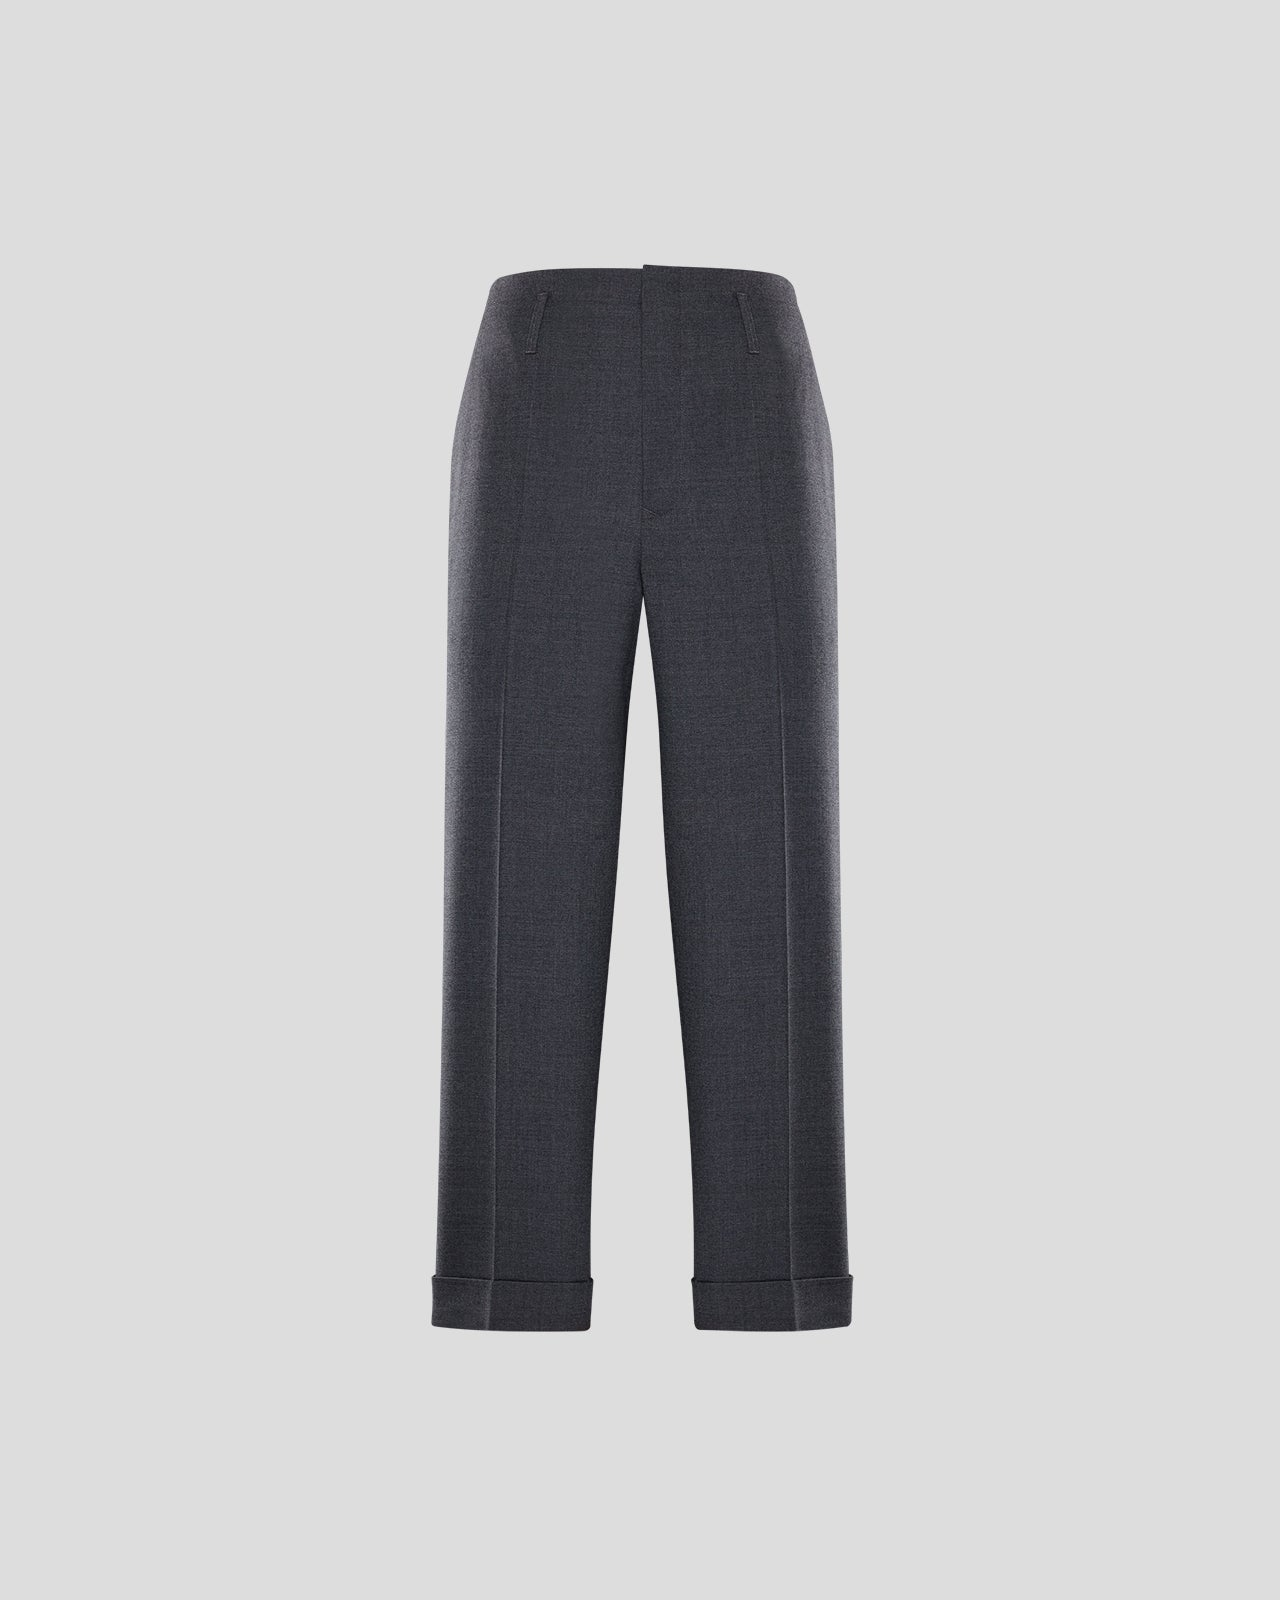 Fragment Trousers in Gray